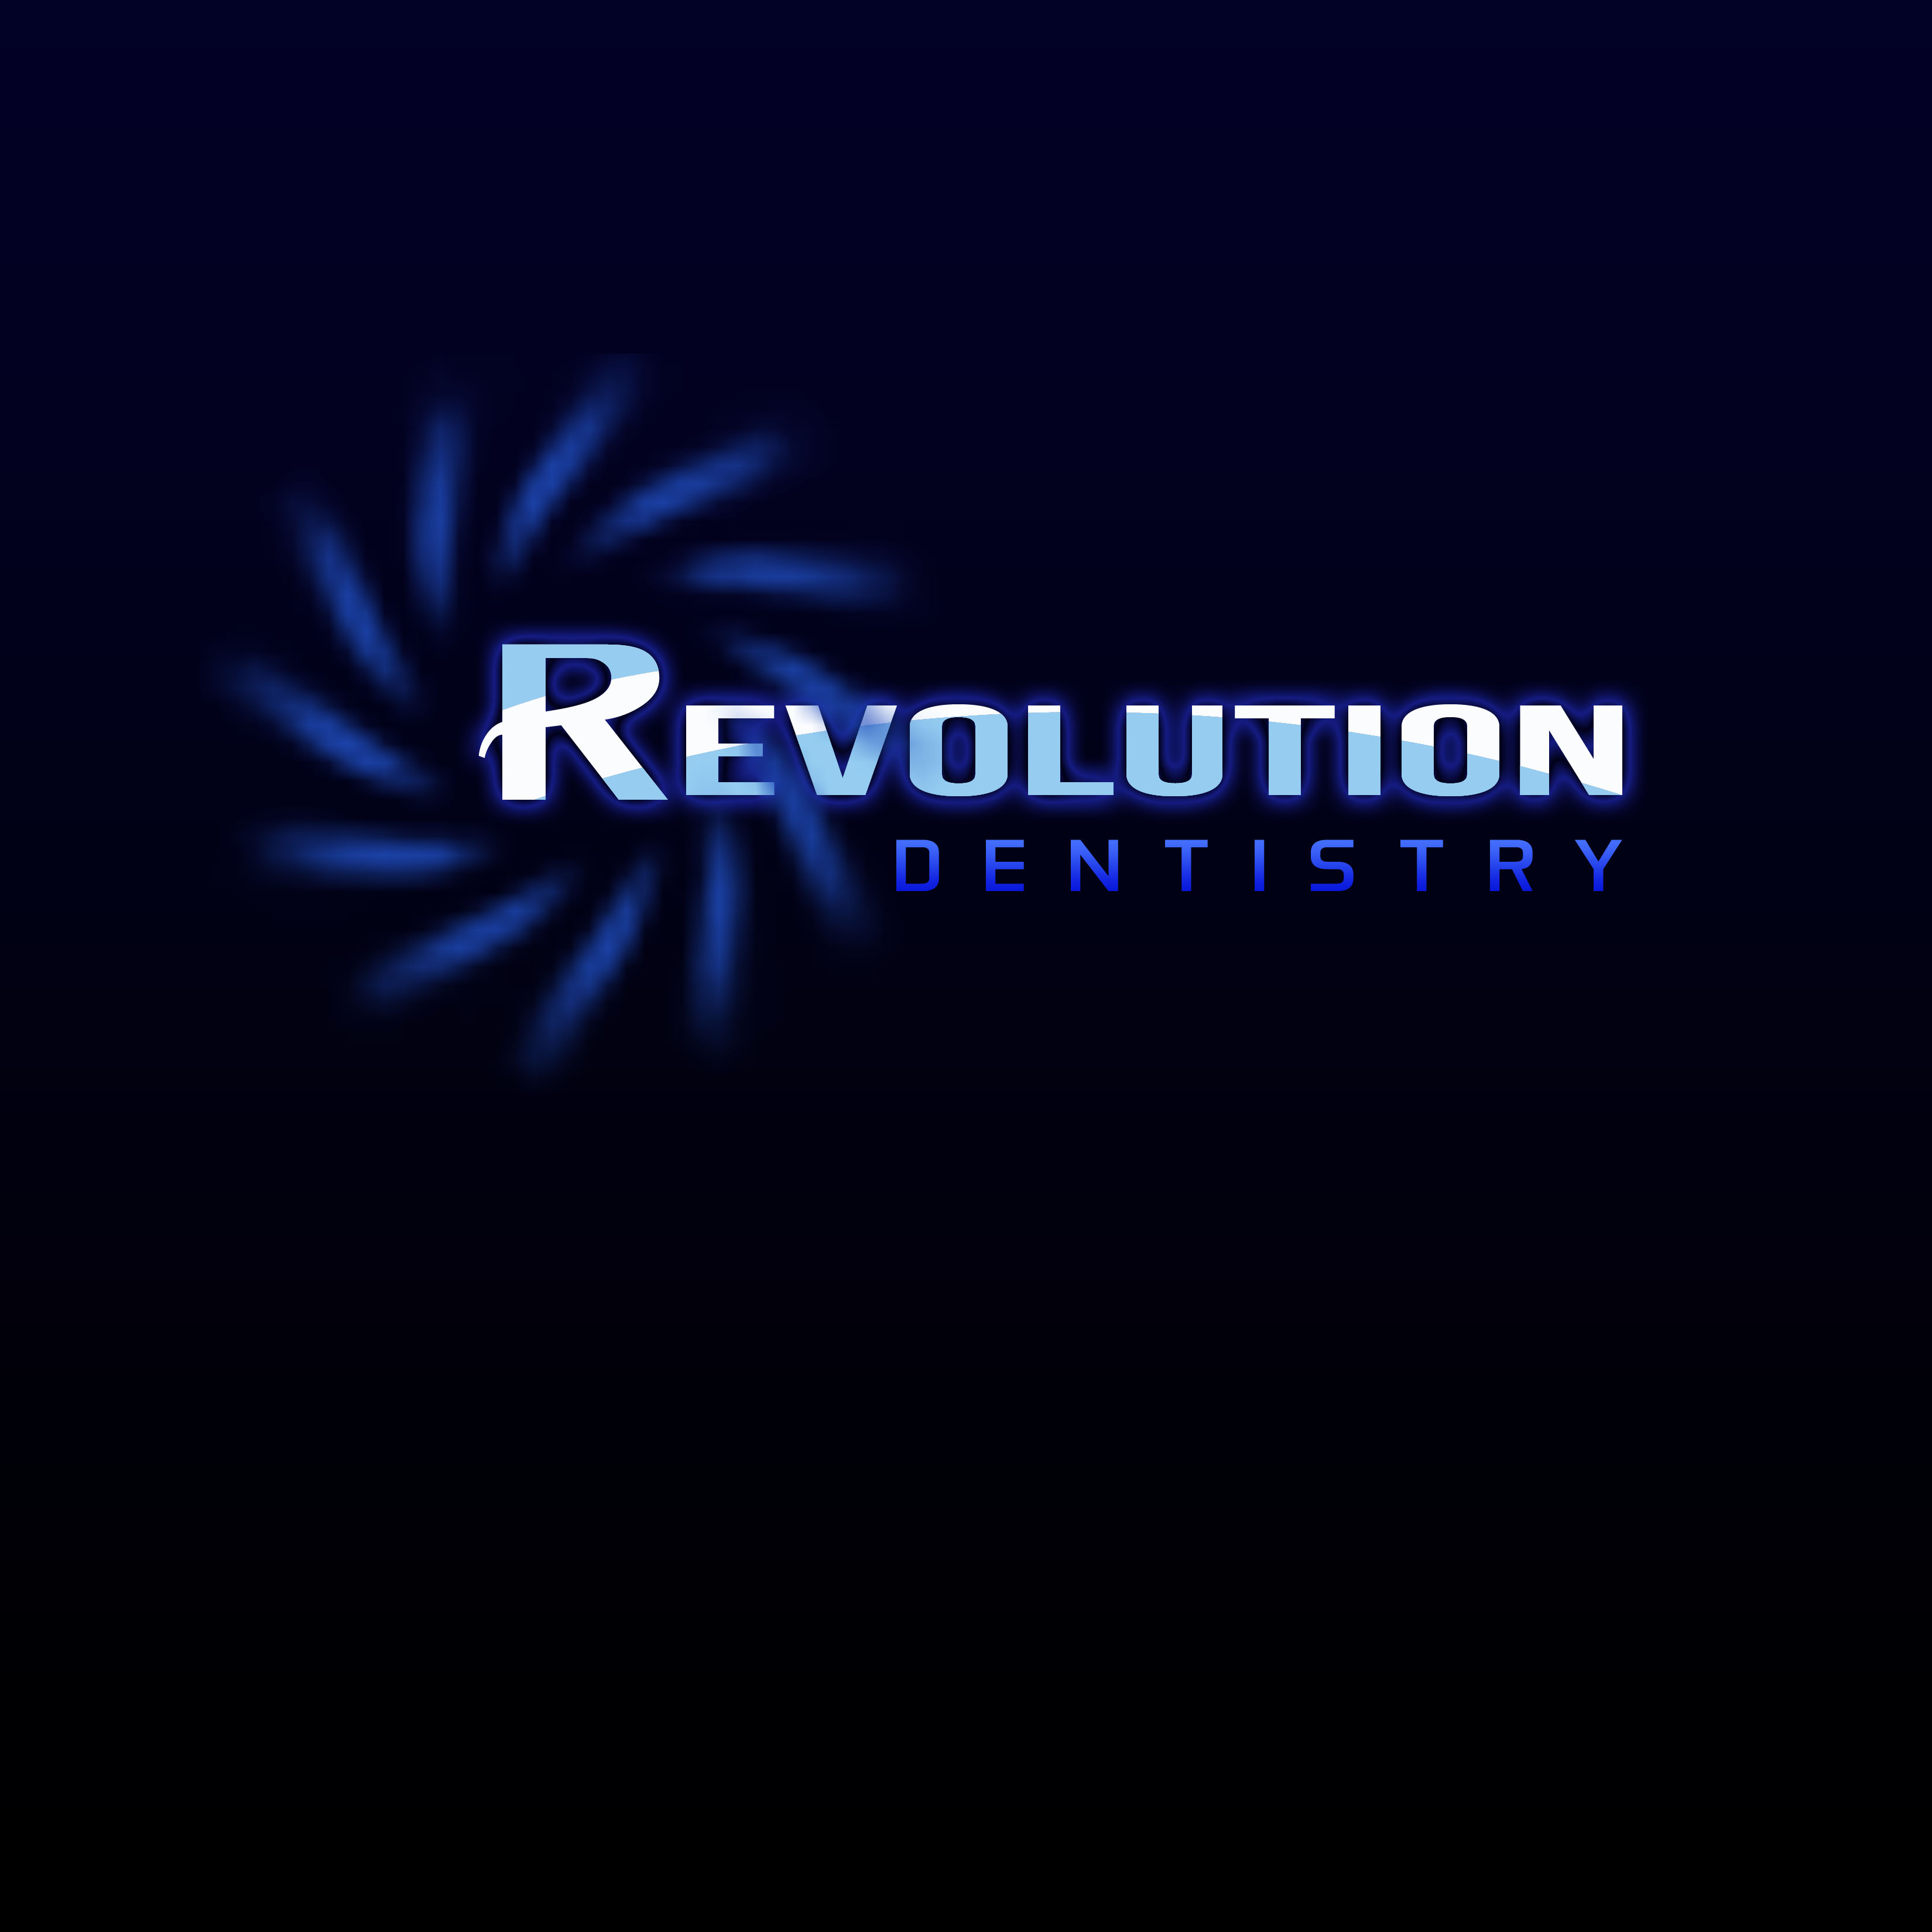 Logo Design by Allan Esclamado - Entry No. 139 in the Logo Design Contest Artistic Logo Design for Revolution Dentistry.